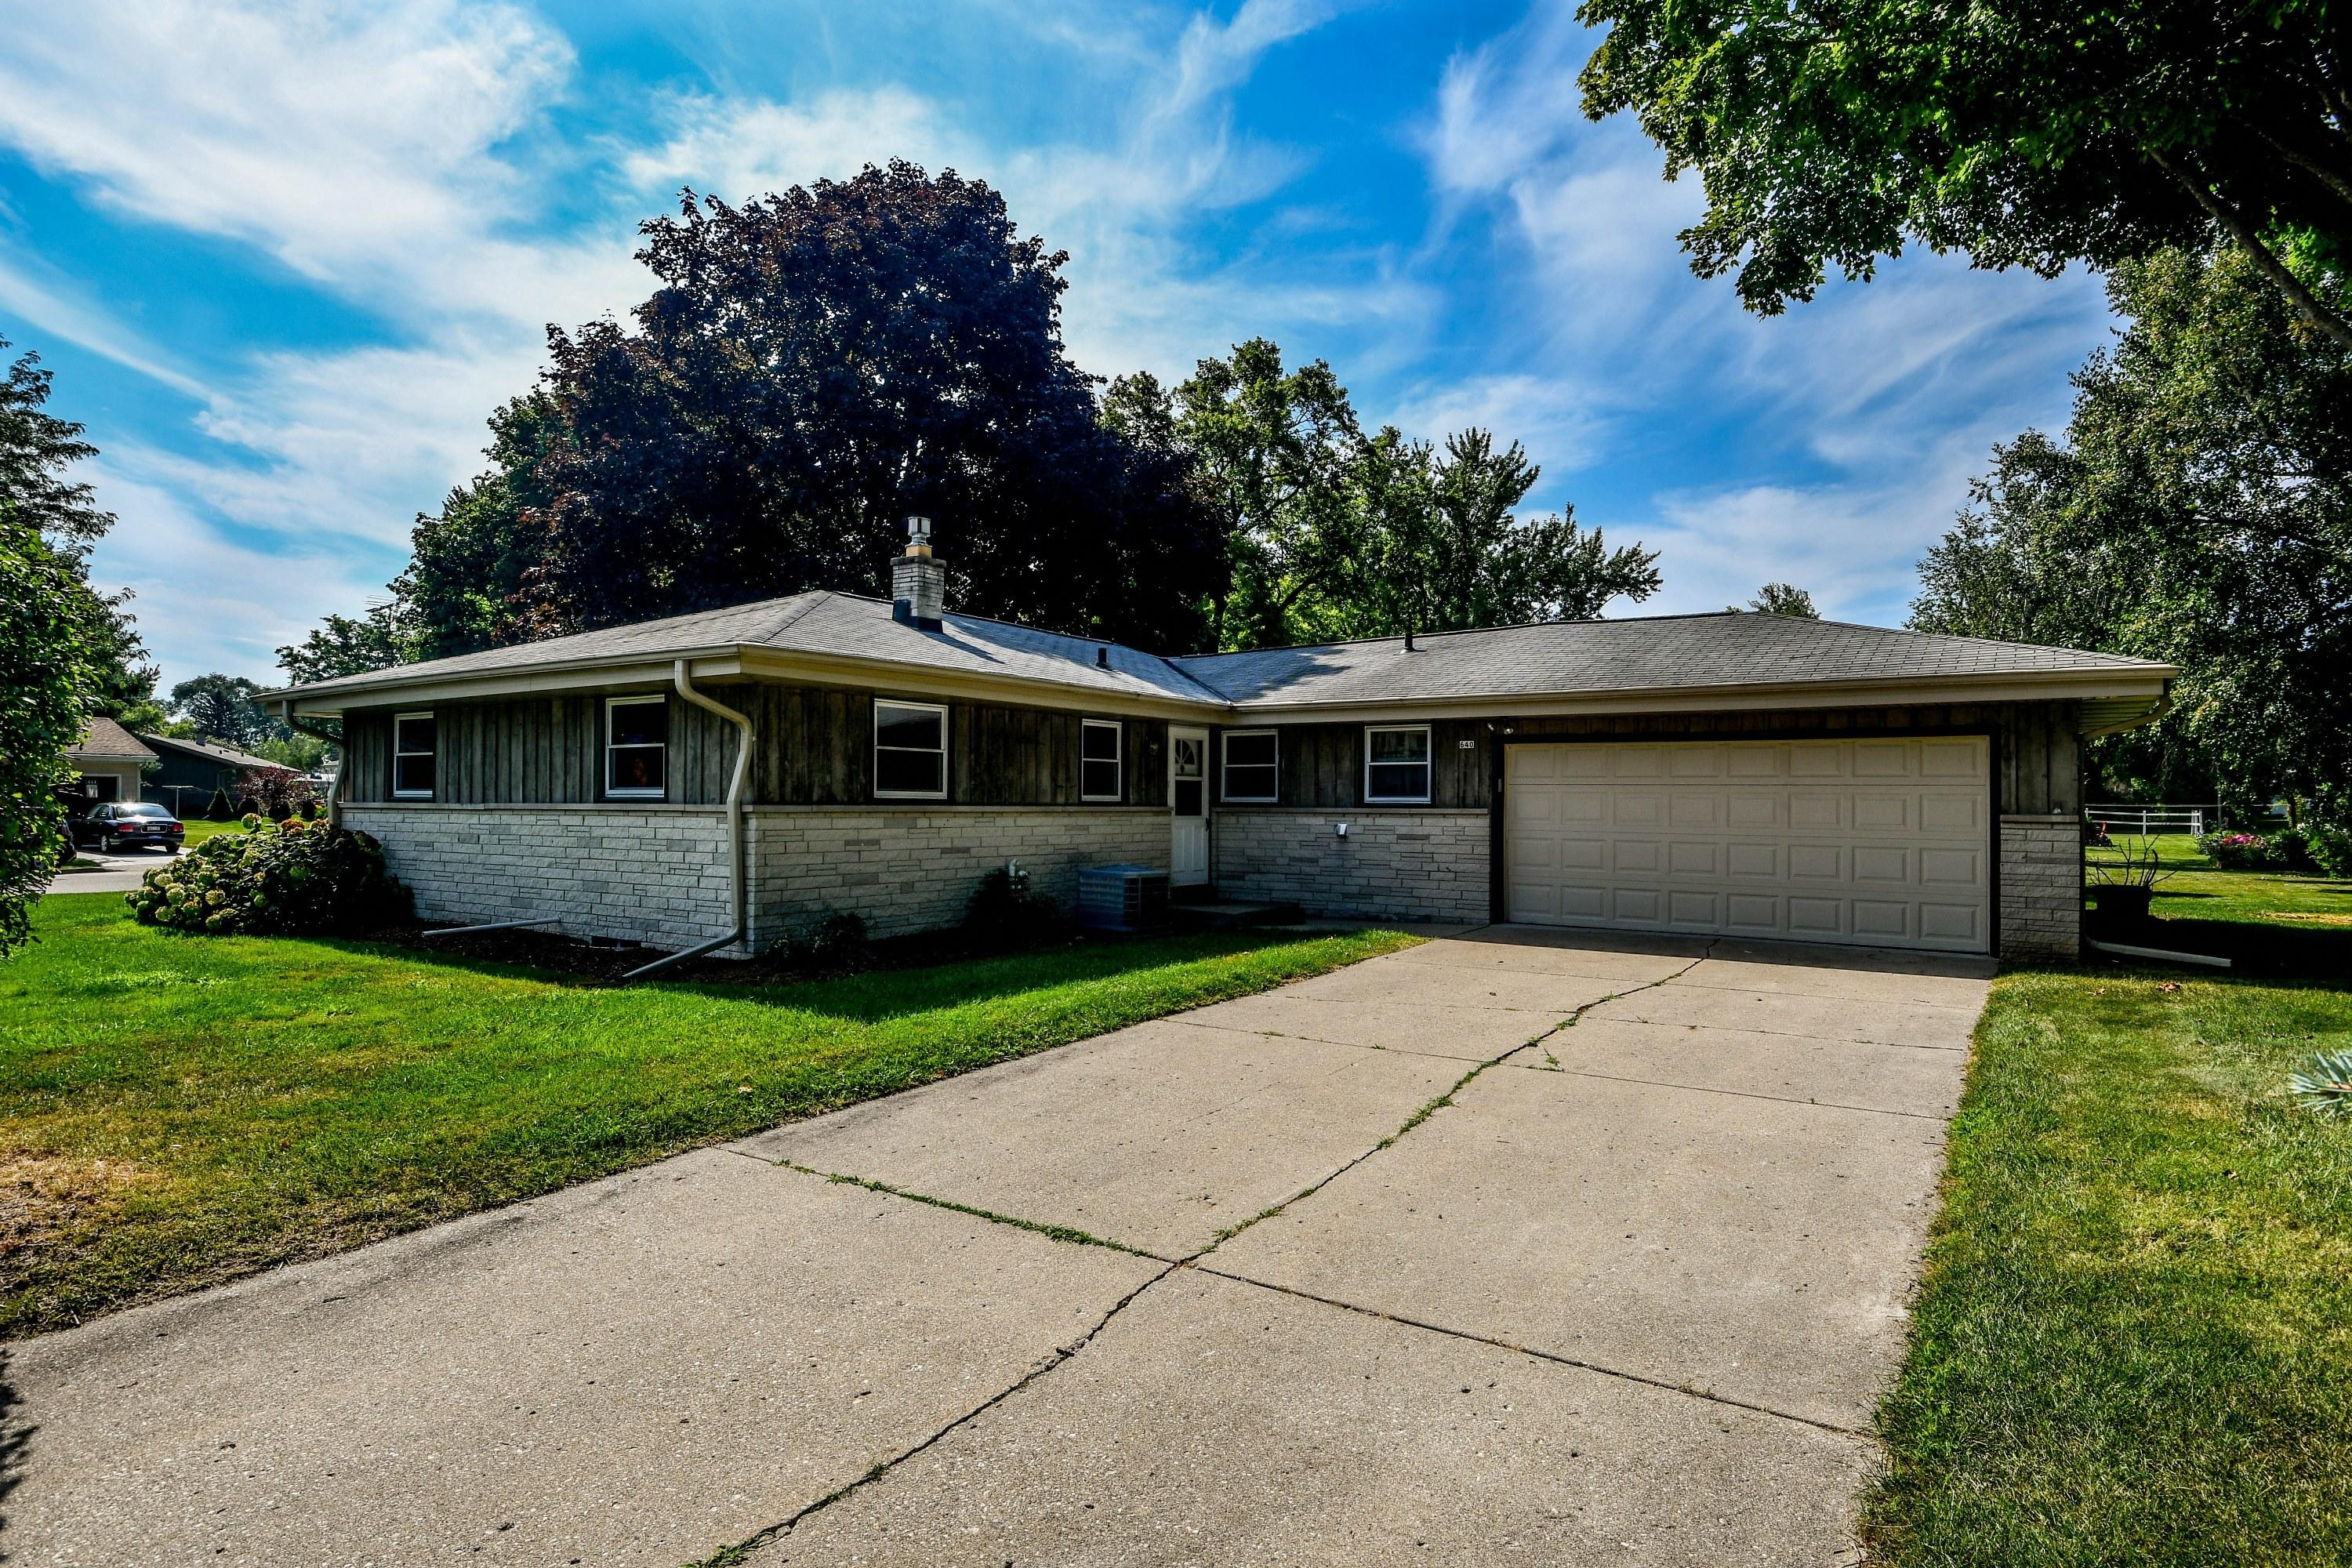 640 Rose St, Oconomowoc, Wisconsin 53066, 3 Bedrooms Bedrooms, 9 Rooms Rooms,1 BathroomBathrooms,Single-Family,For Sale,Rose St,1702139